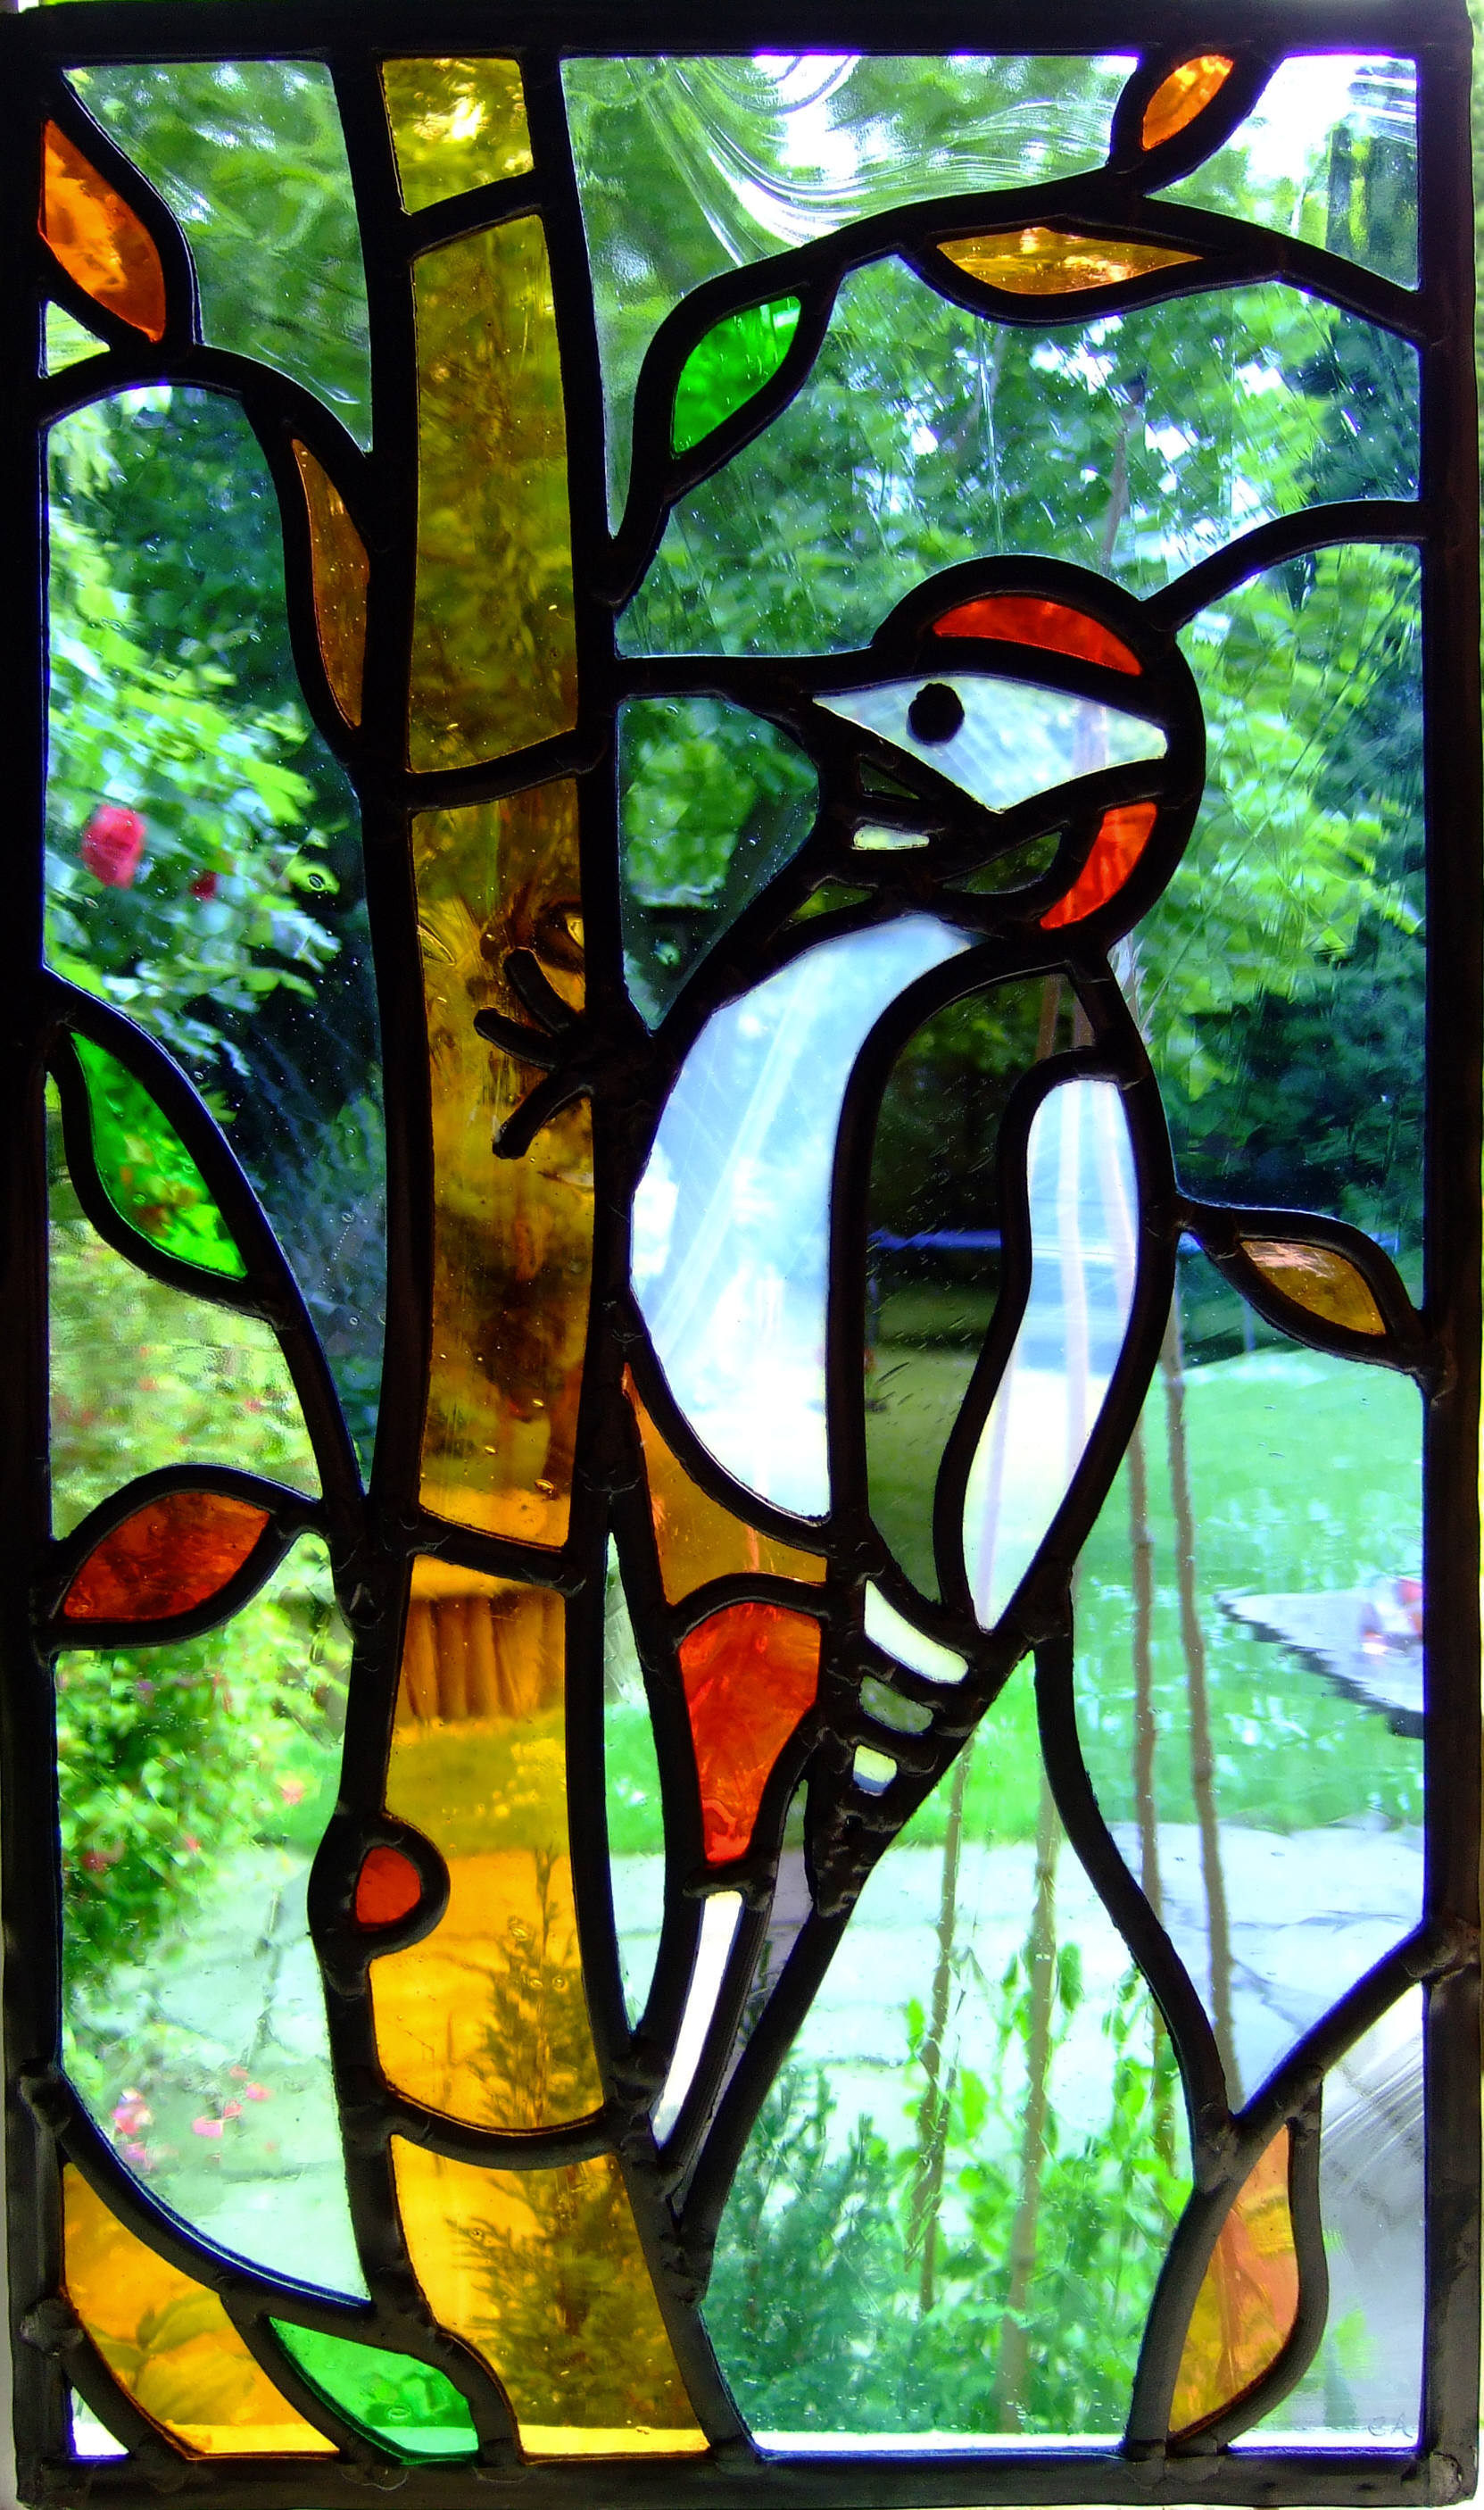 1000+ images about Stained glass windows on Pinterest.